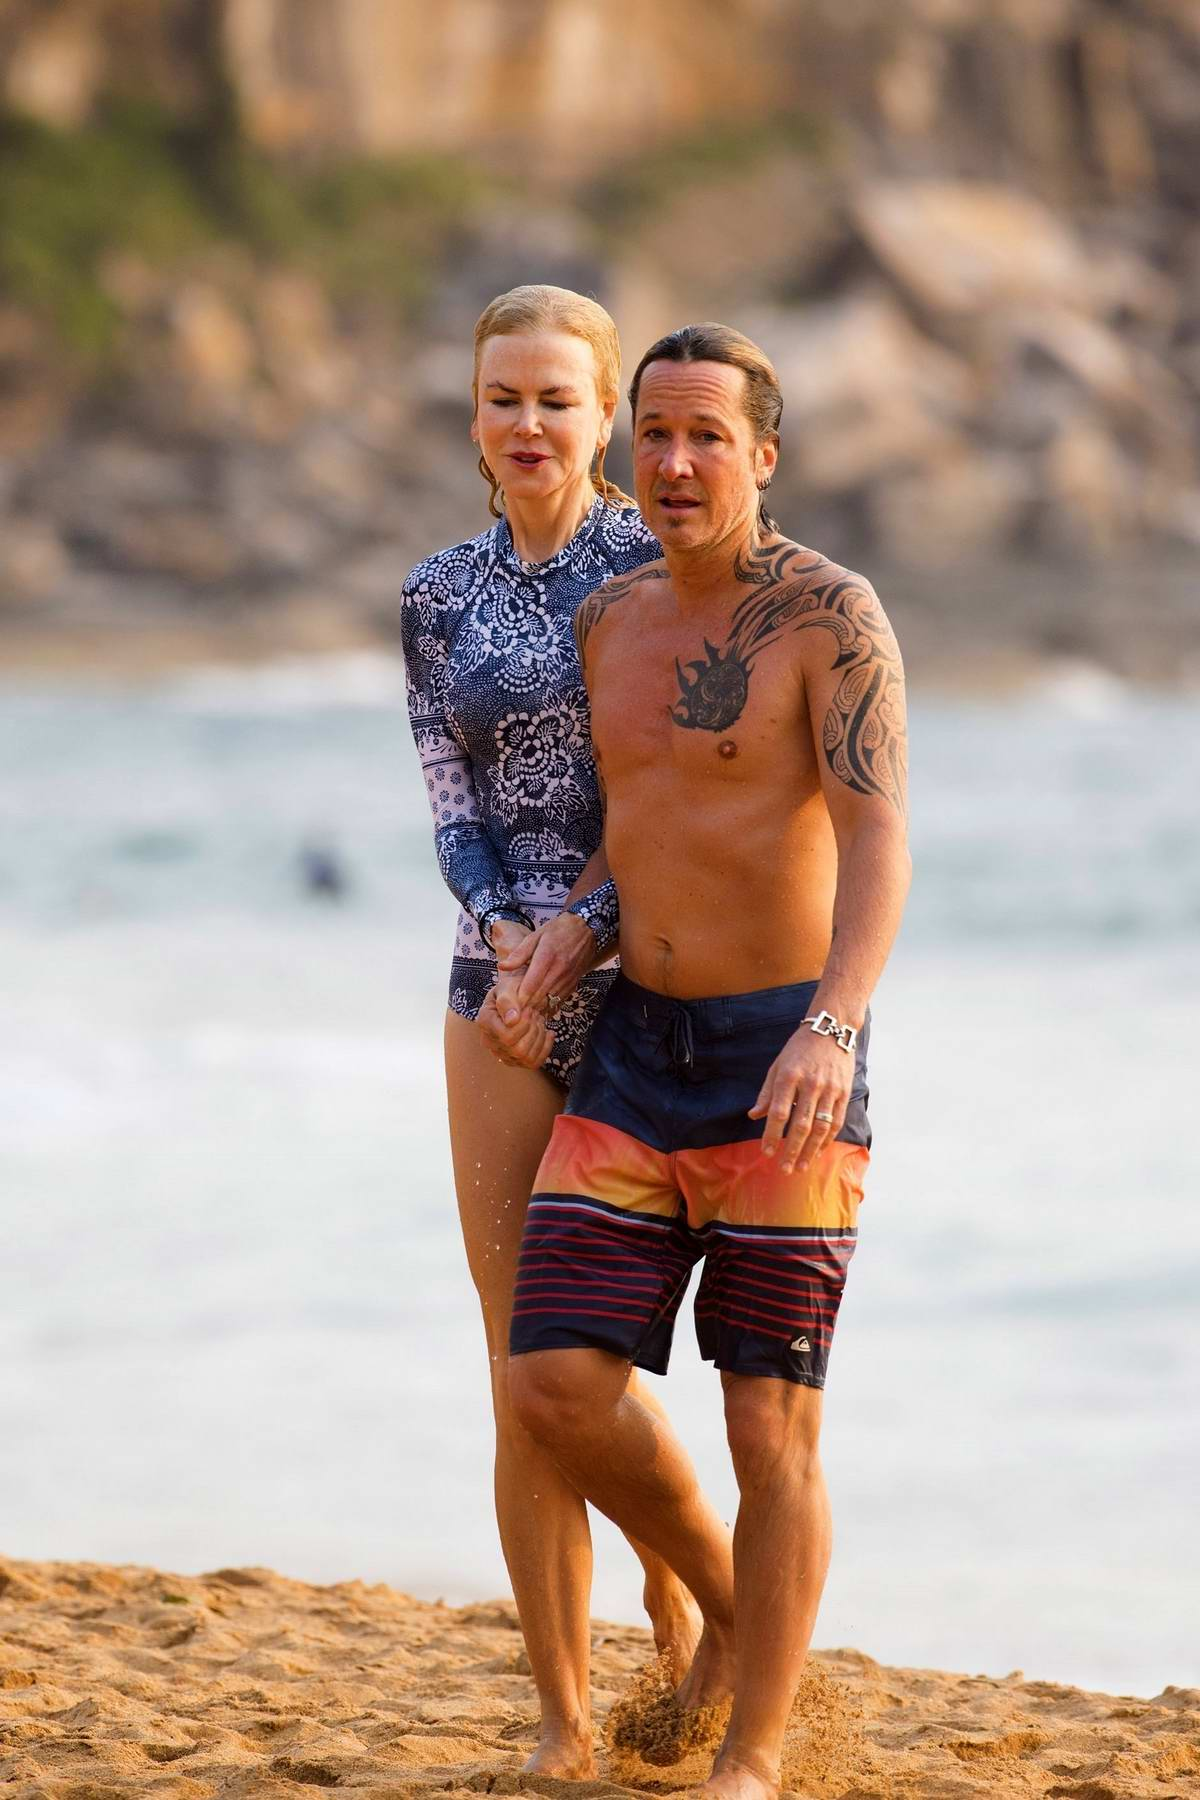 Nicole Kidman hits the beach for a morning swim with Keith Urban in Sydney, Australia